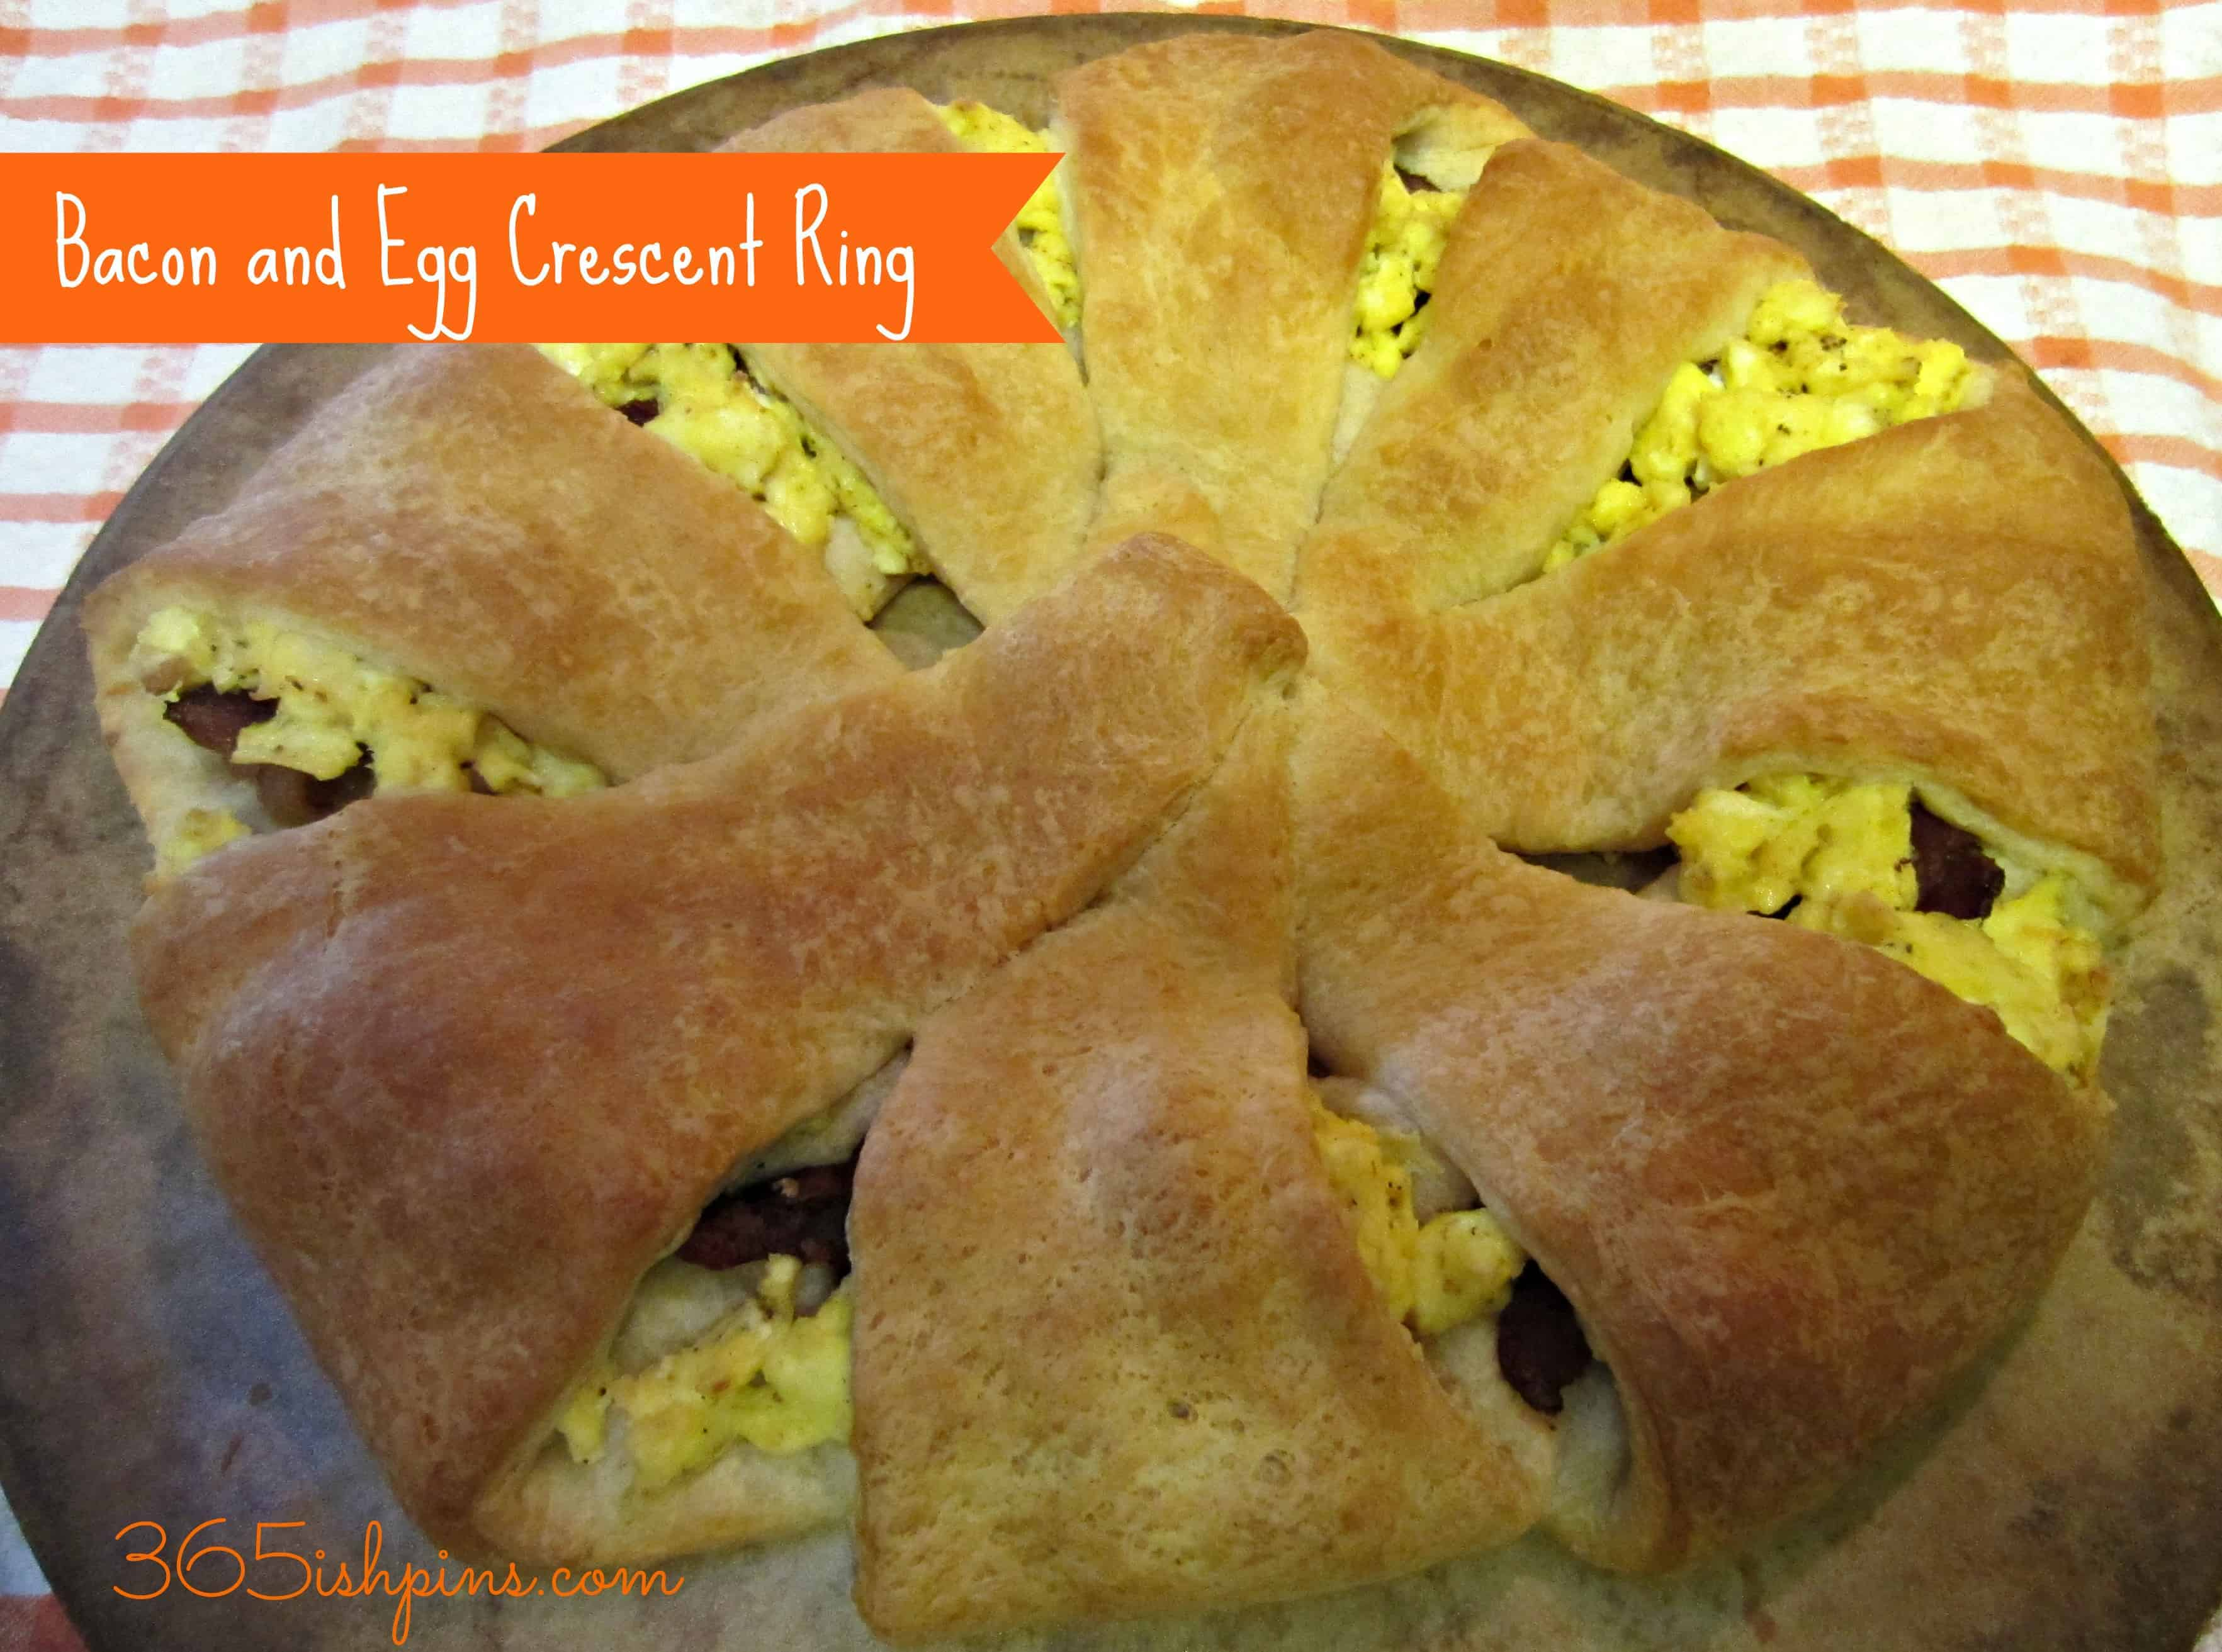 Day 331: Bacon&Egg Crescent Ring